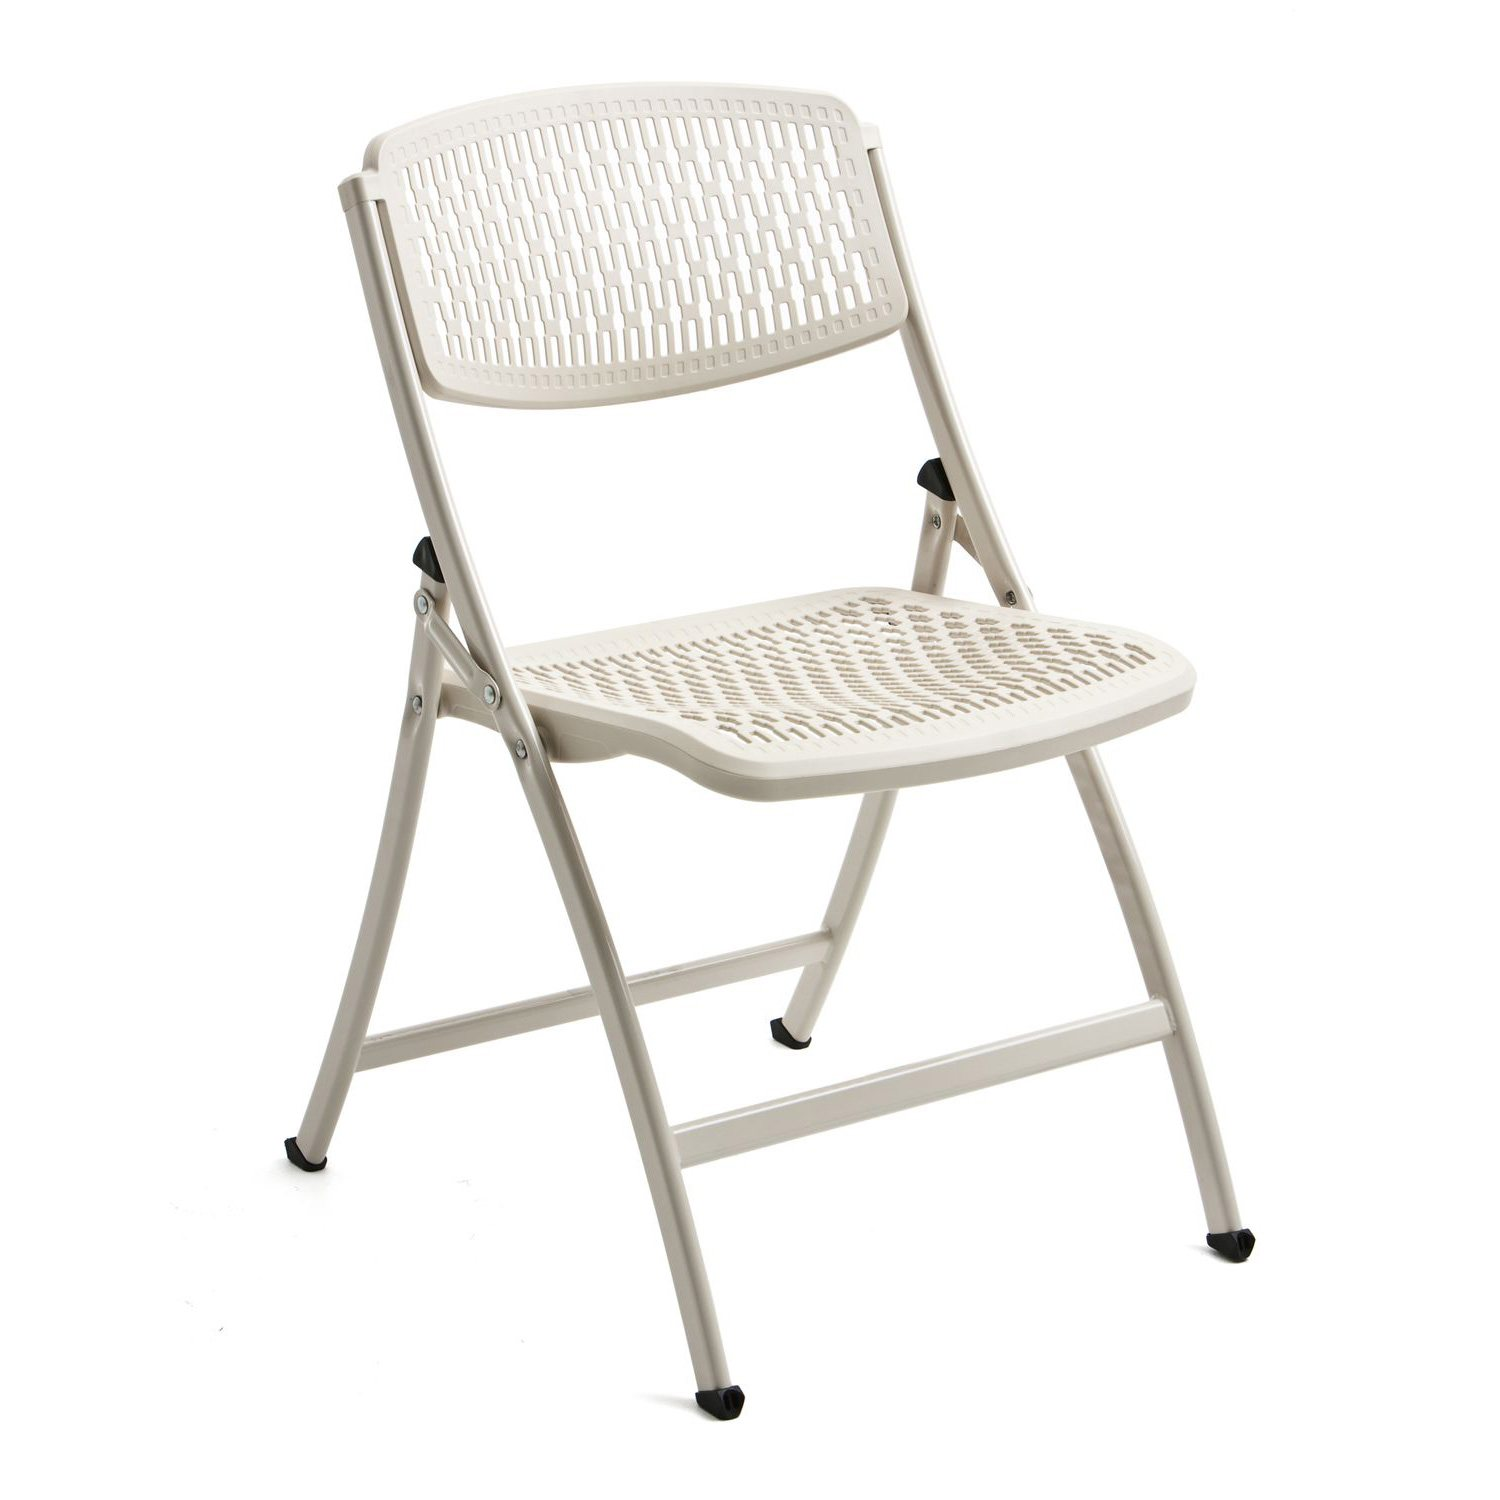 Flex e Folding Chair from Mity Lite White